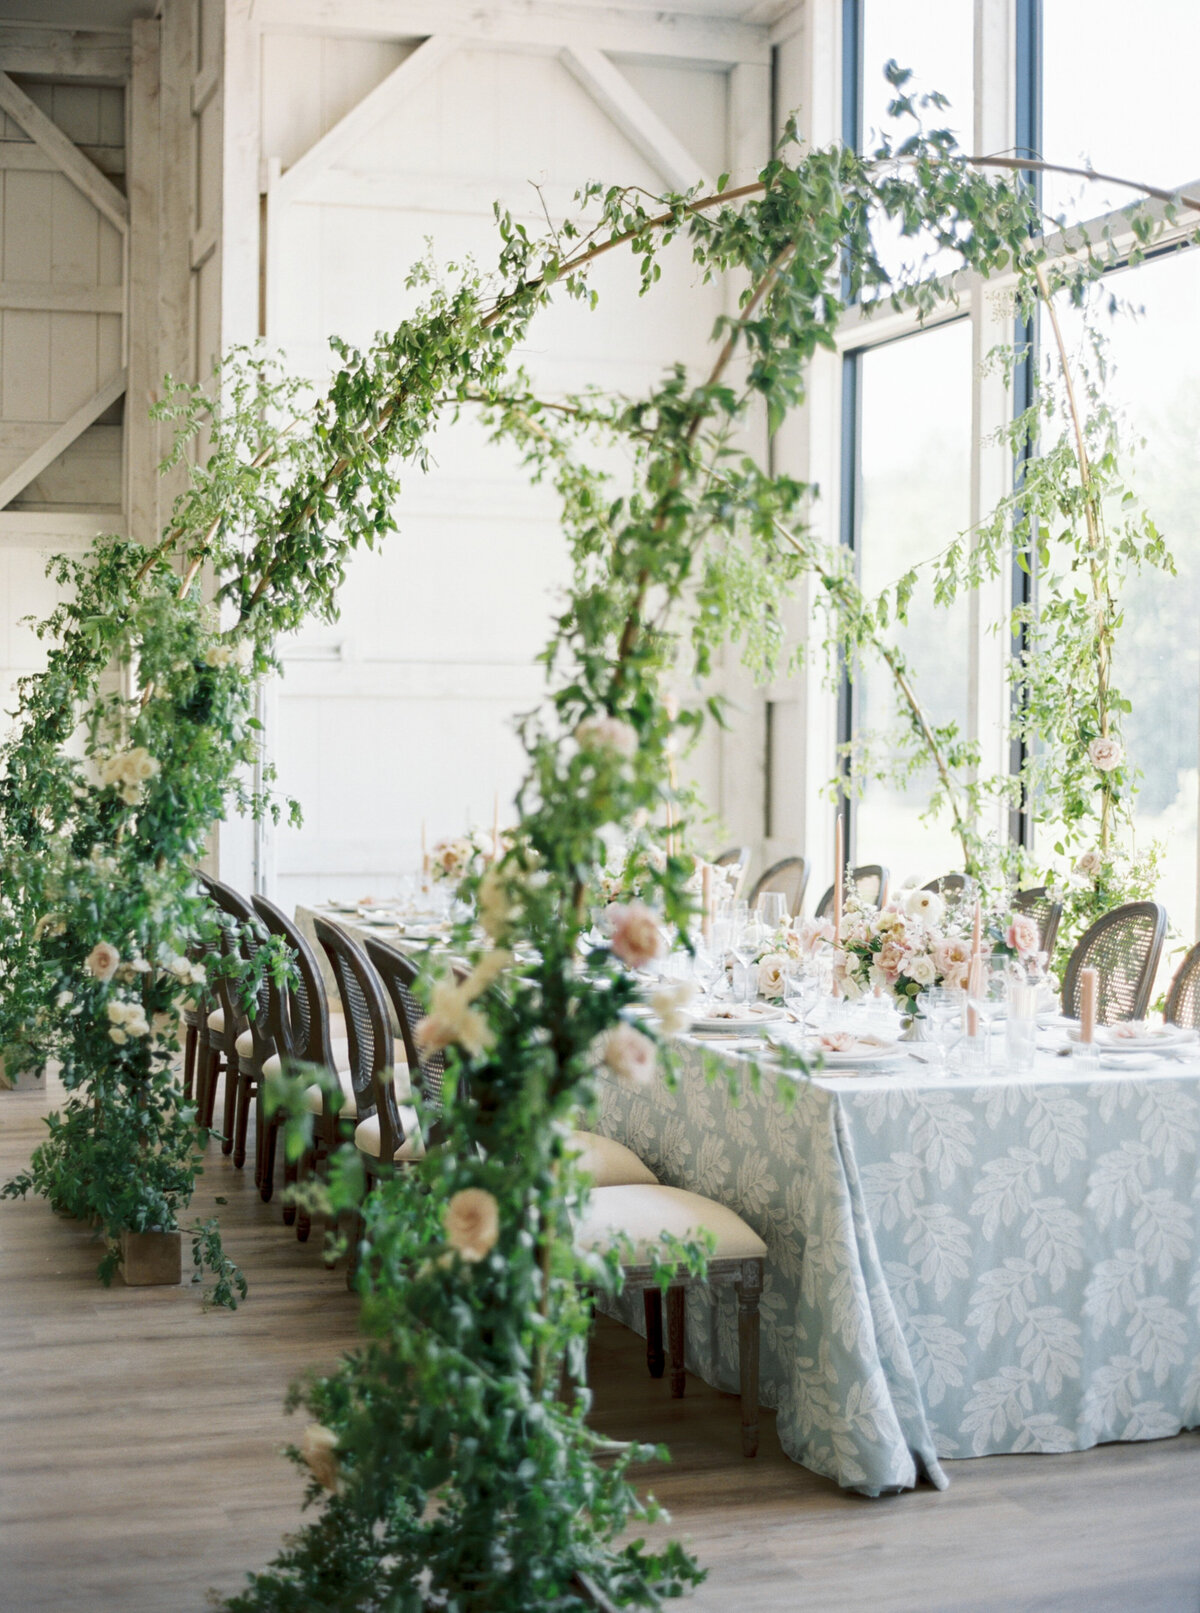 14 The Greenery Intimate Wedding with Always Yours Events 46